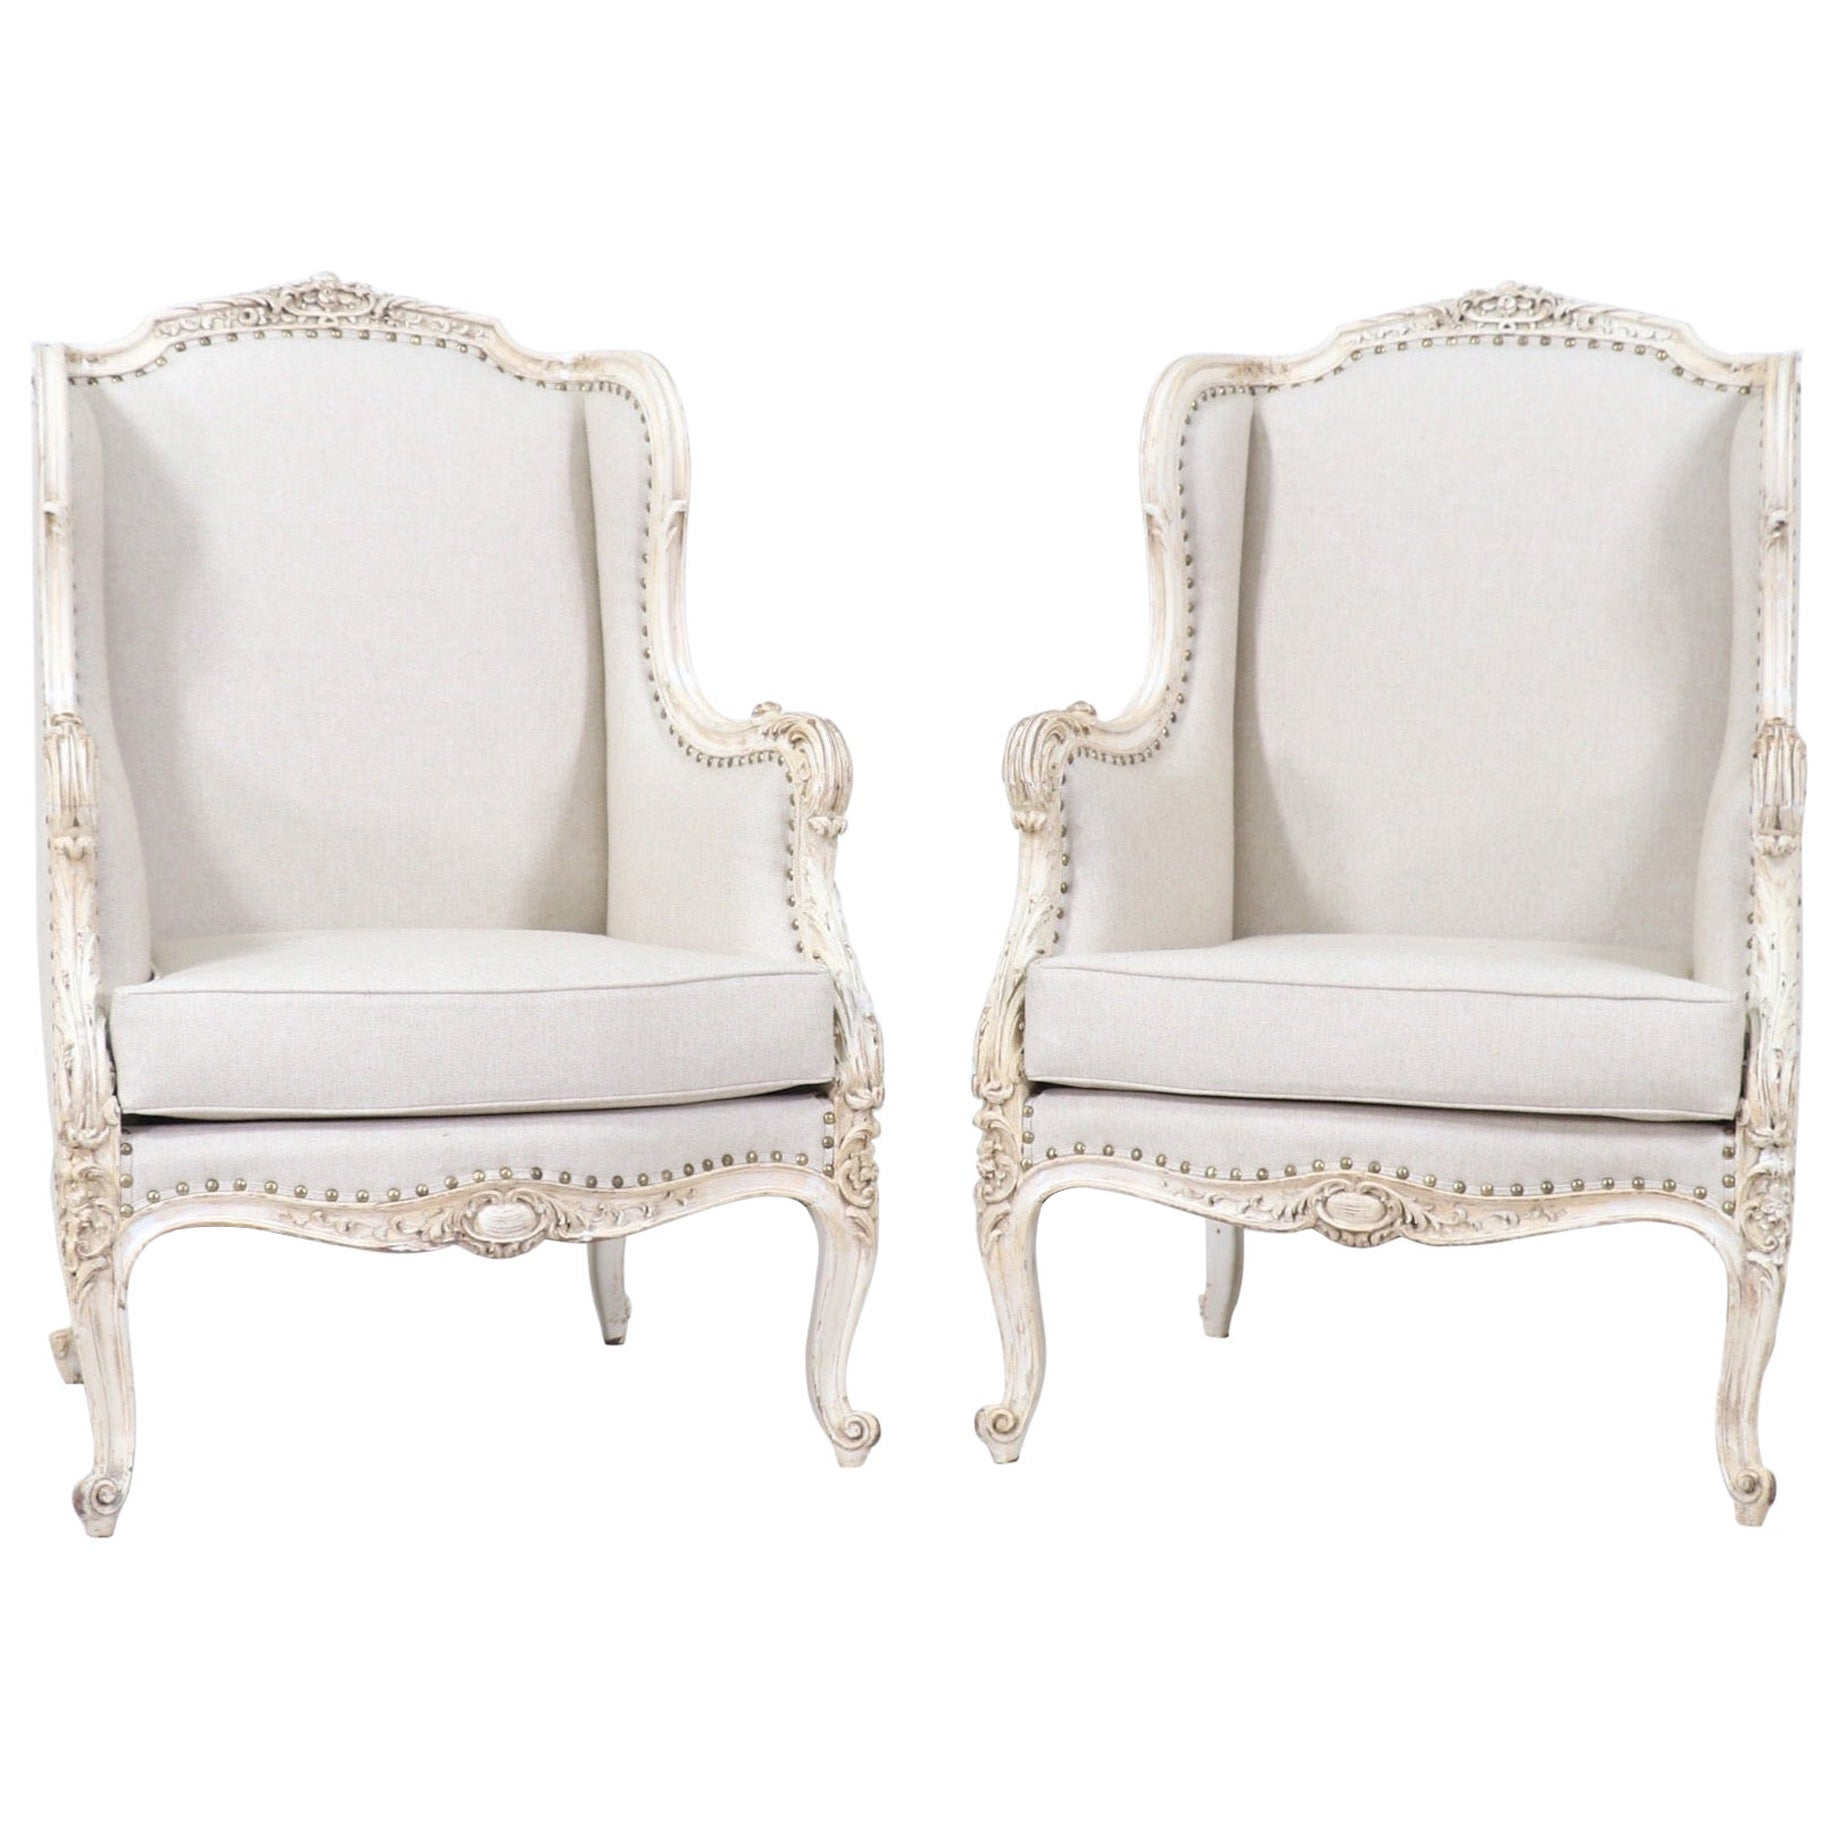 1920s French Louis XV-Style Painted and Carved Bergeres Chairs